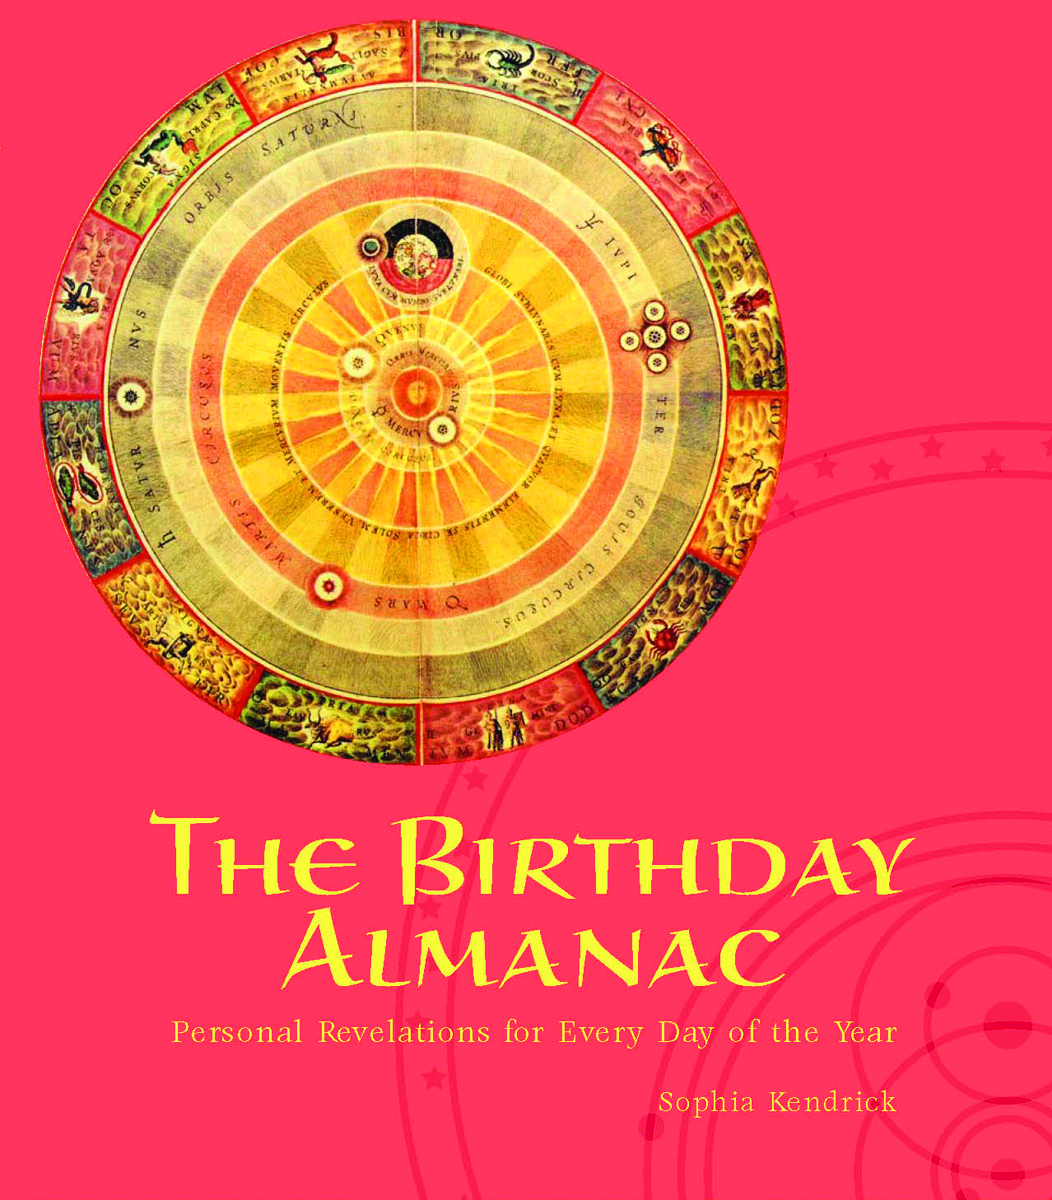 The Birthday Almanac